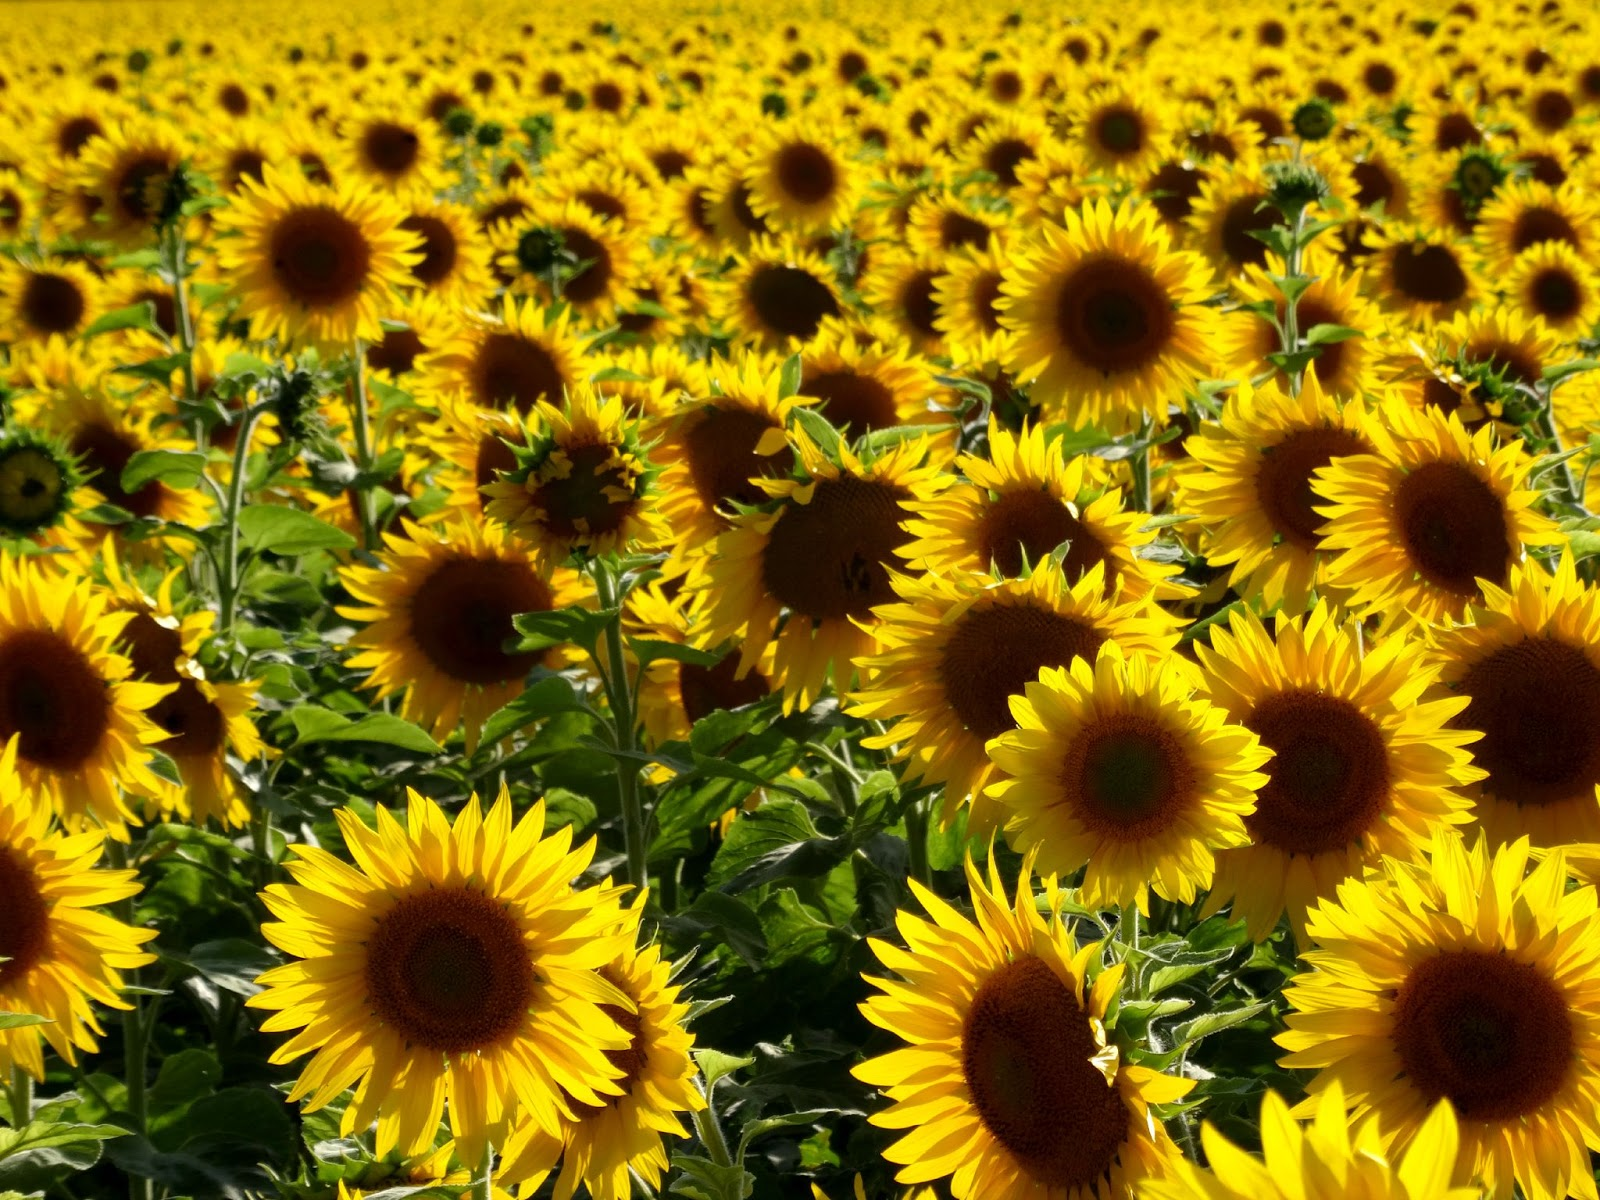 millions of sunflowers